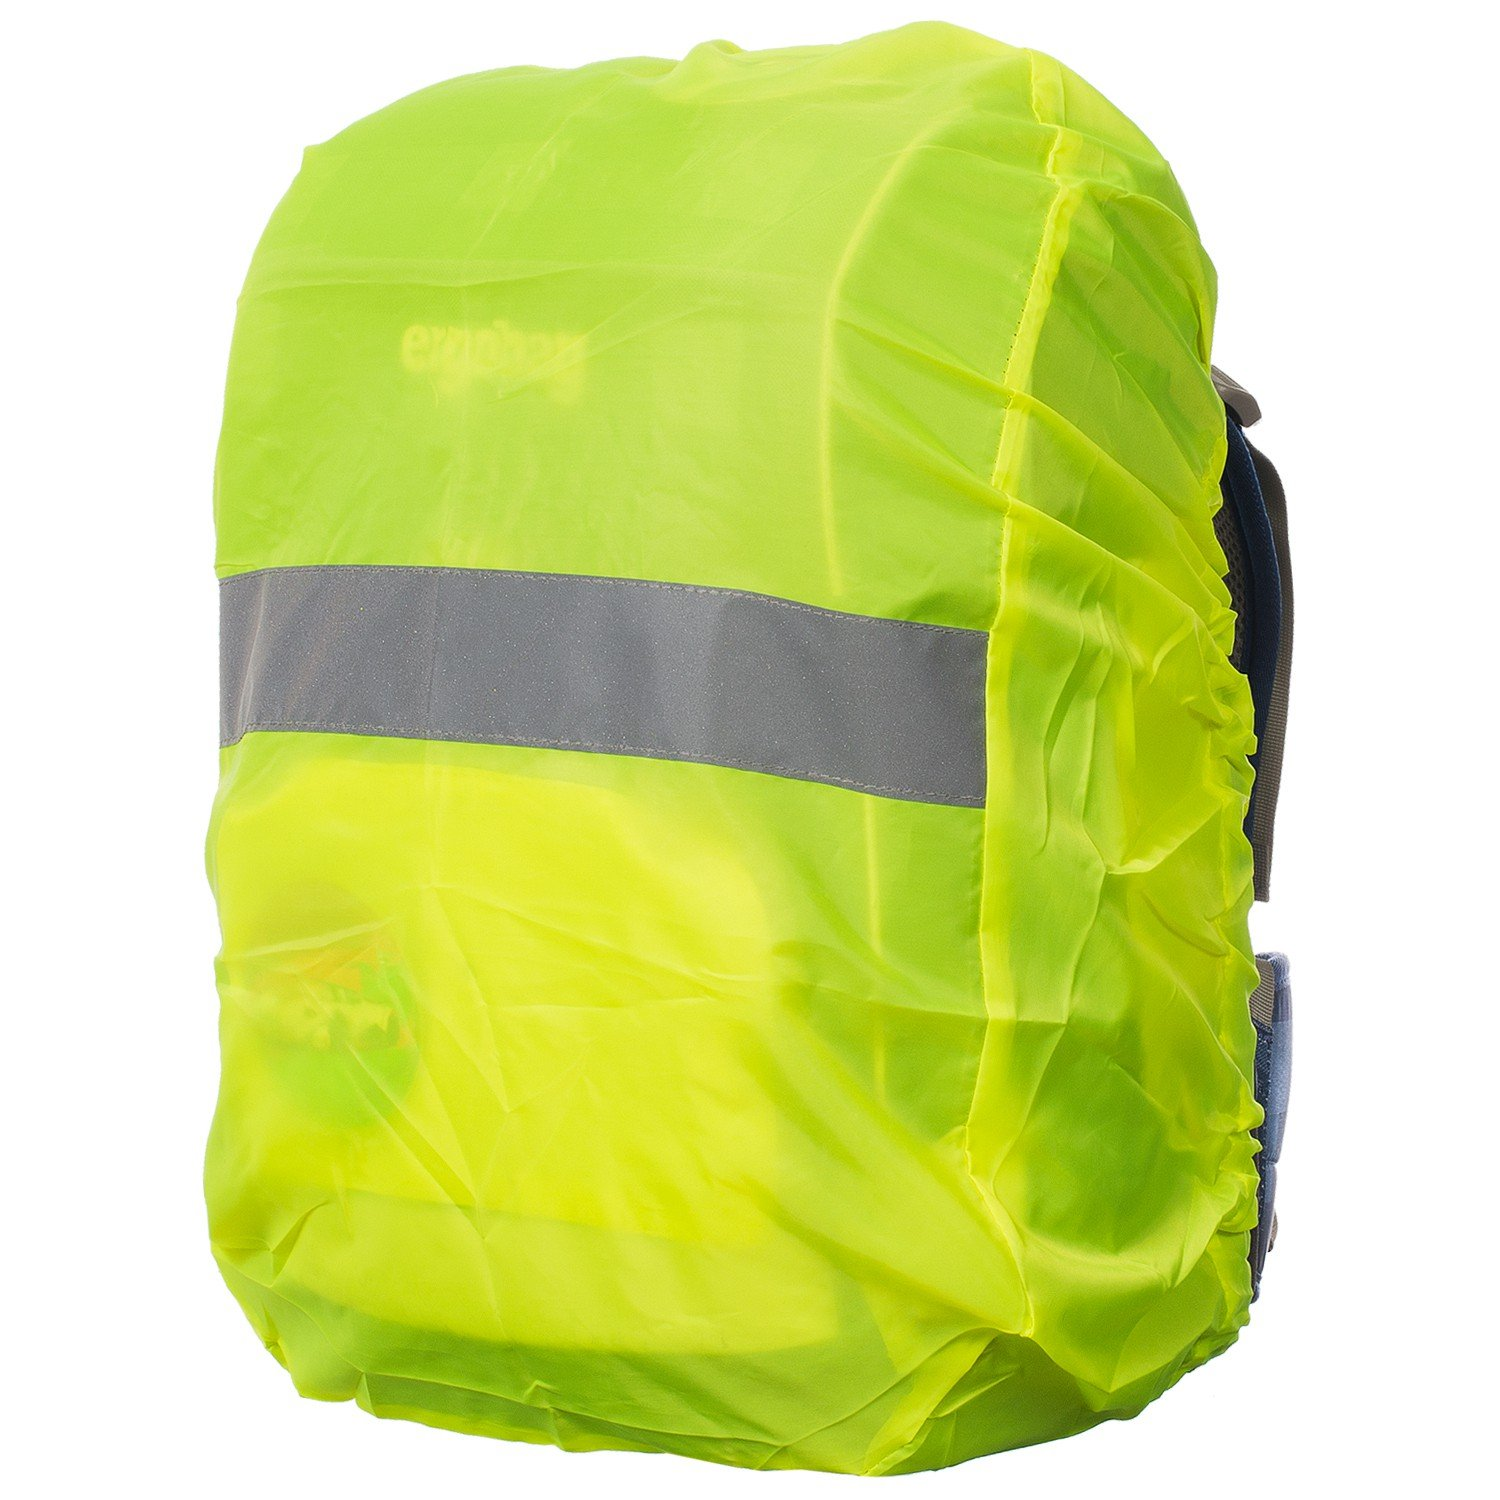 Rain Cover for Backpacks Rucksack School Satchel Bags | Waterproof | Reflective stripe | Backpack Rain Cover Bag | Water Resist | Safety High Visibility Reflective Waterproof- Movoja MOV-RucksackSicherheit